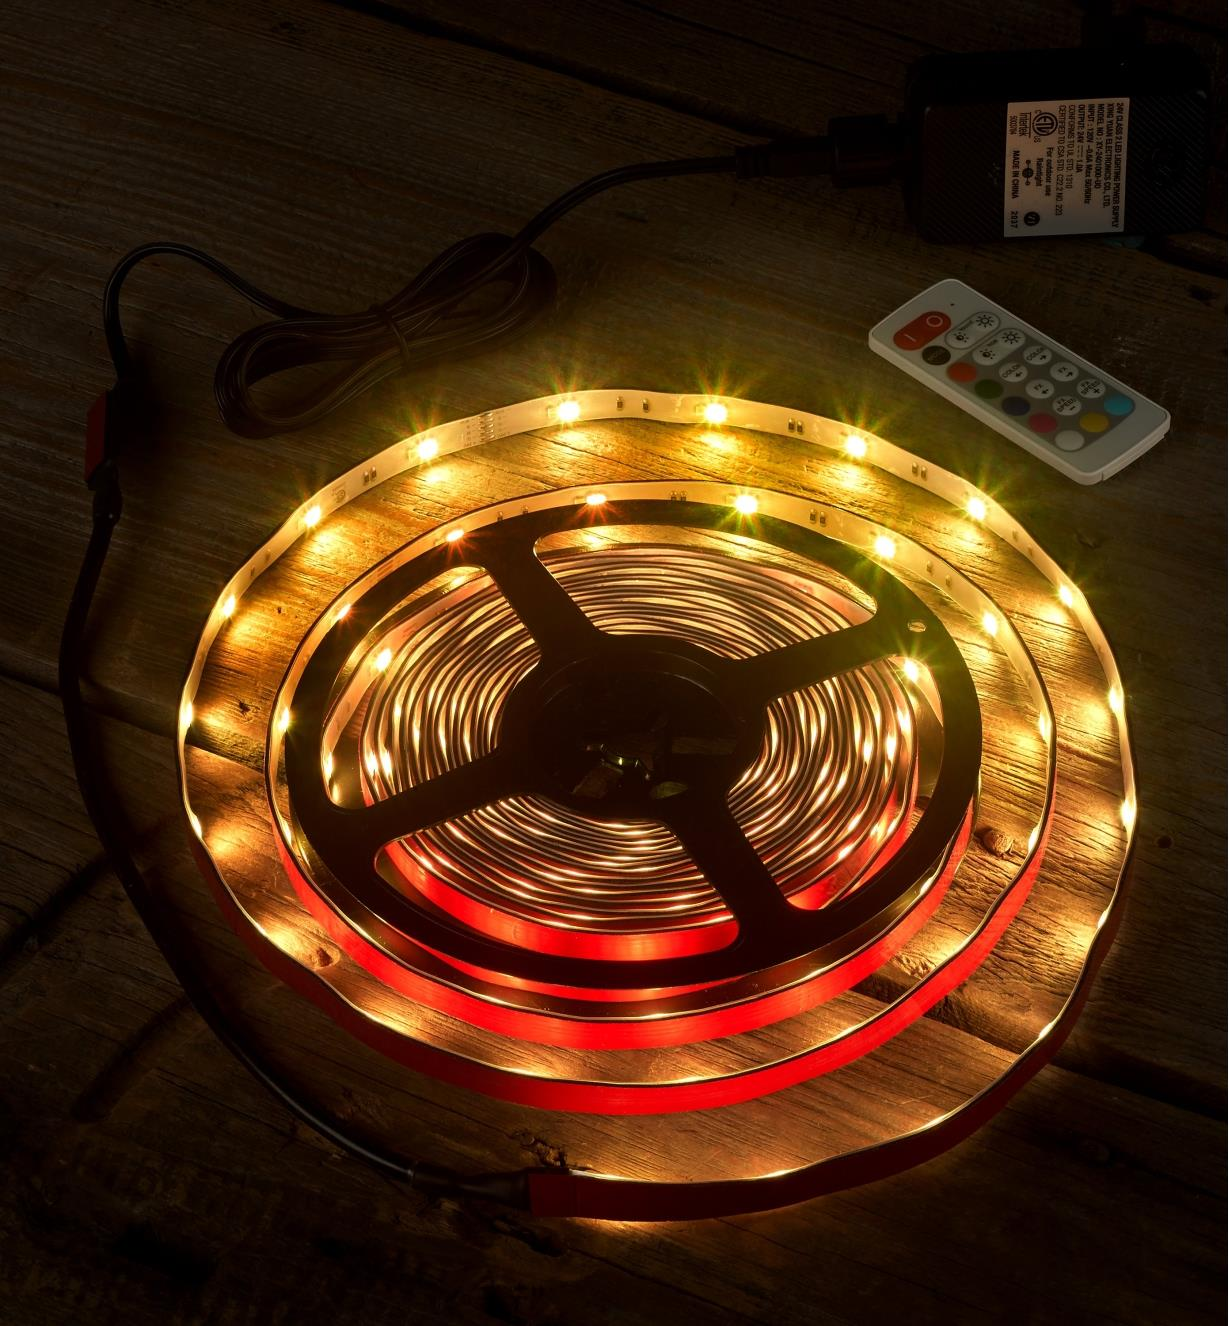 An LED color-controlled tape light kit set to a yellow hue to test it before installation